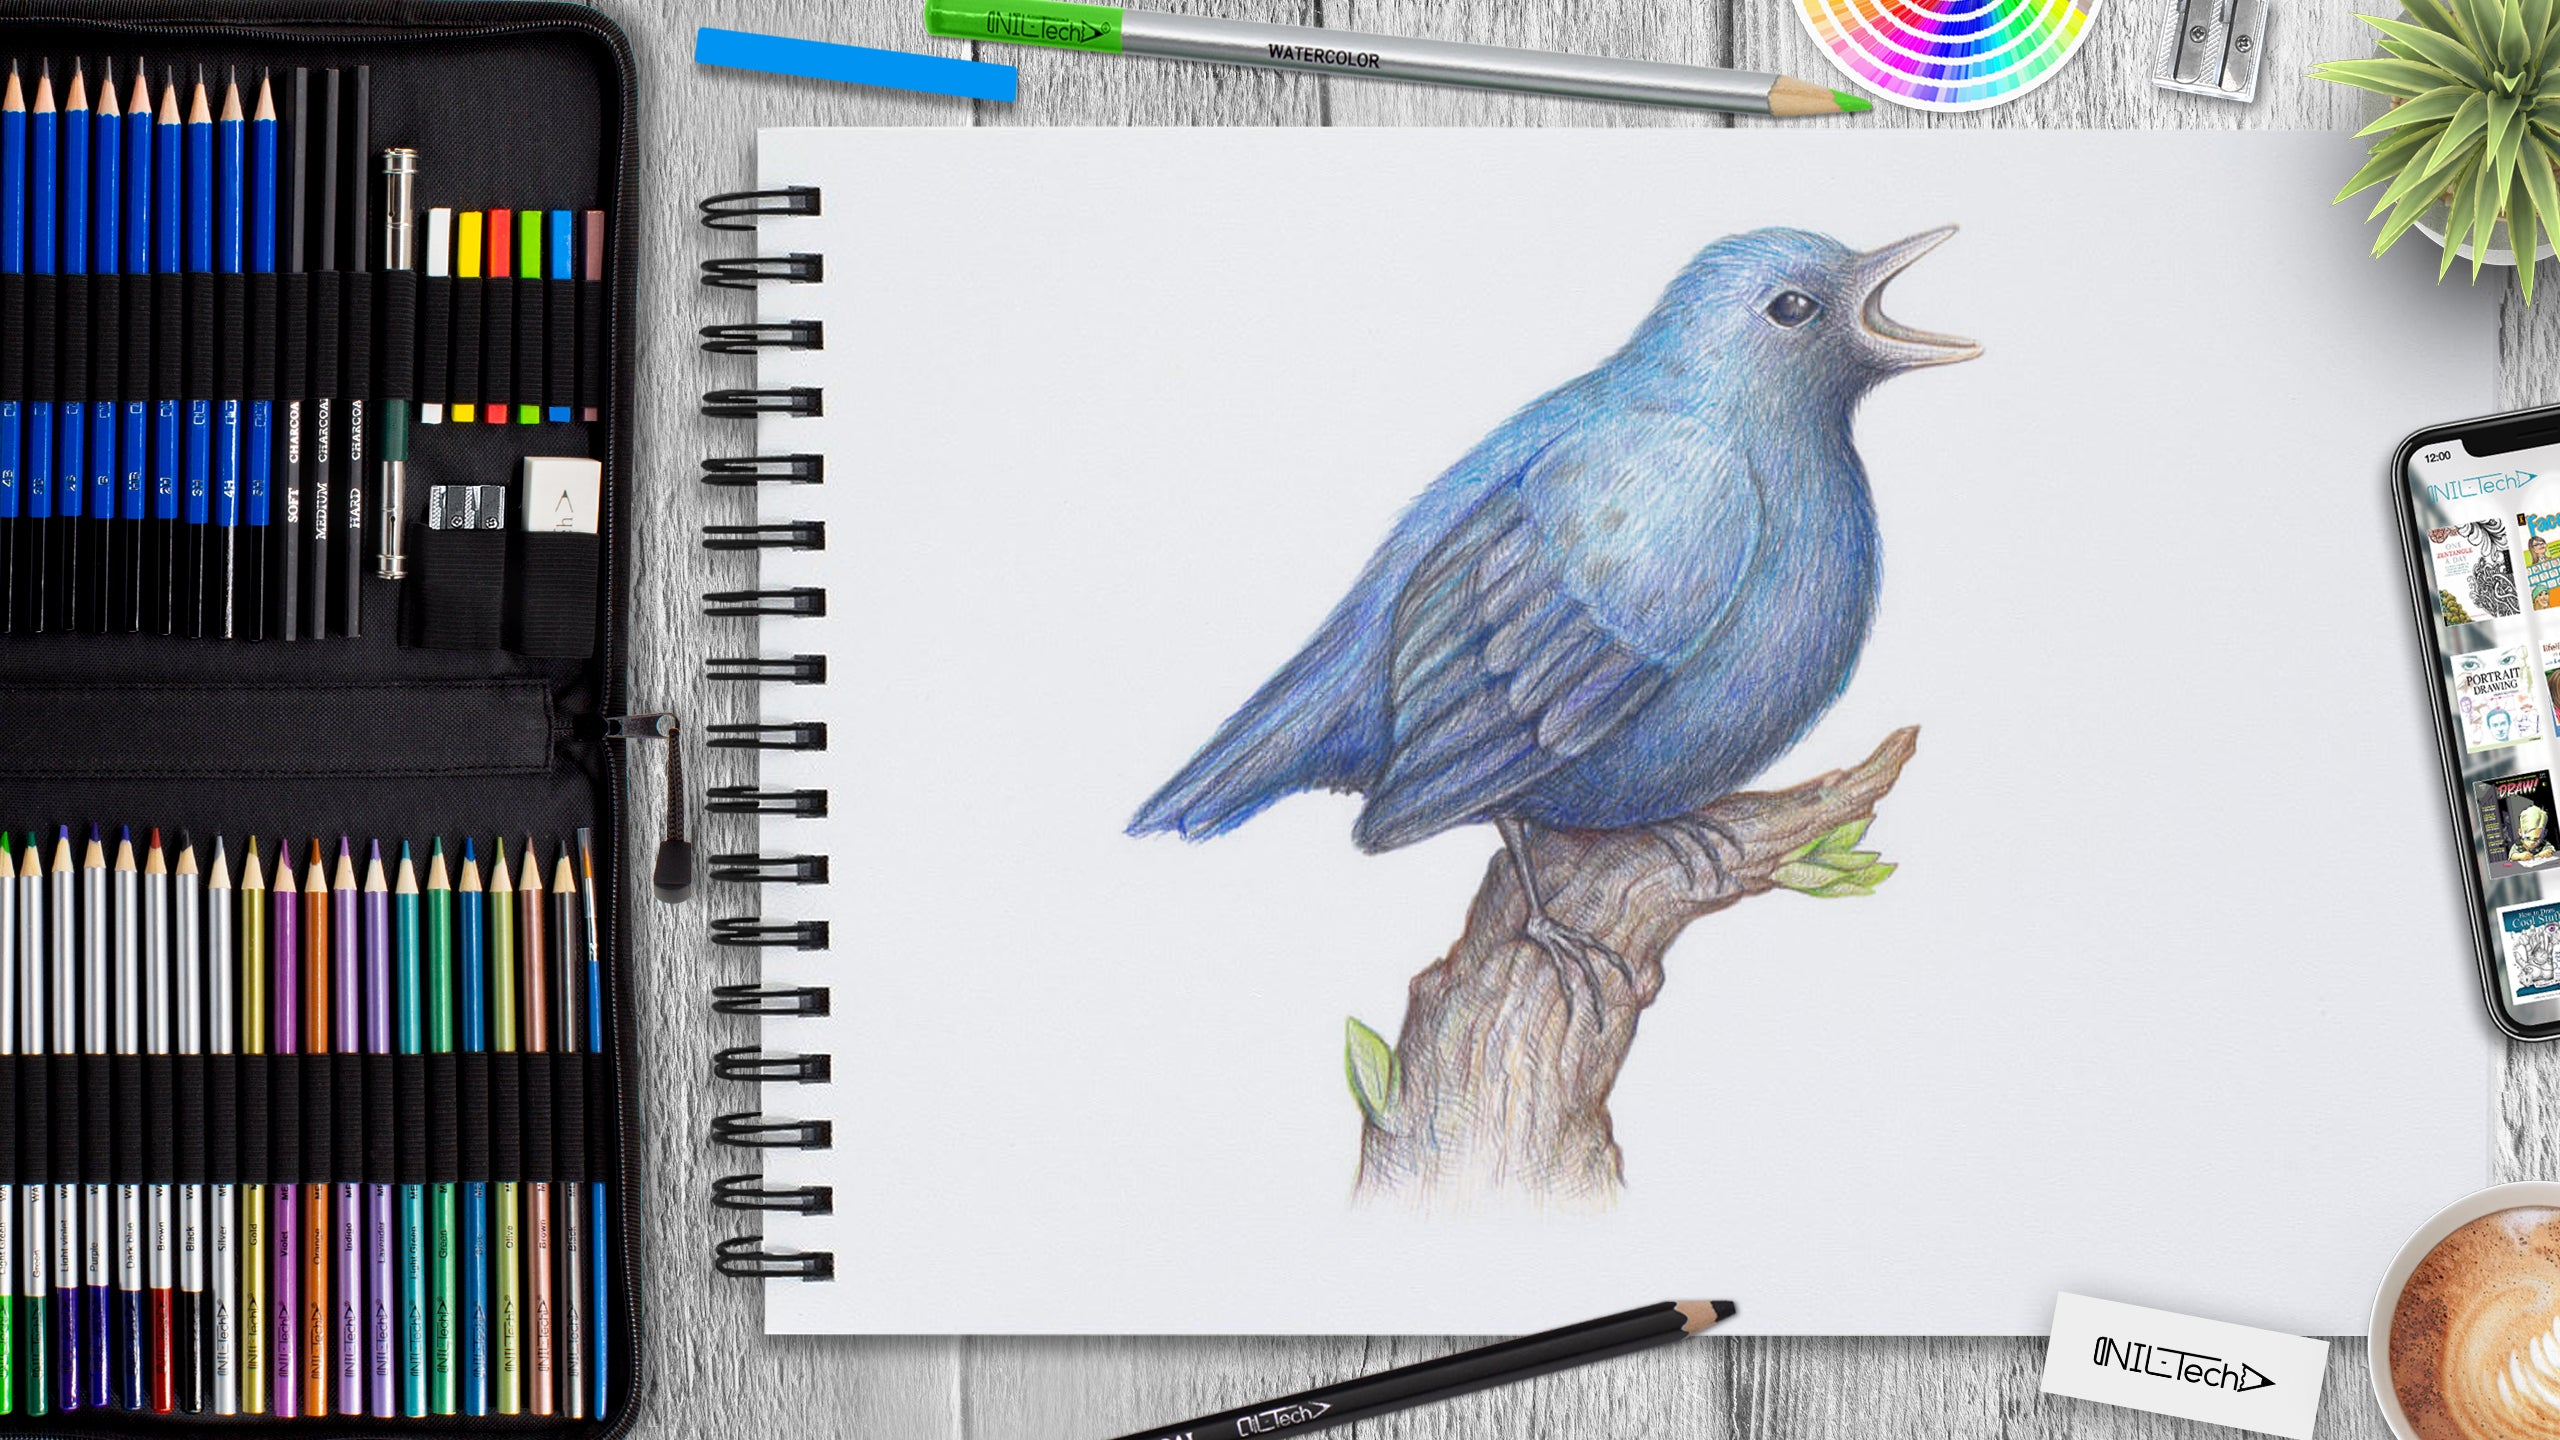 How to Draw a Blue Bird Step by Step